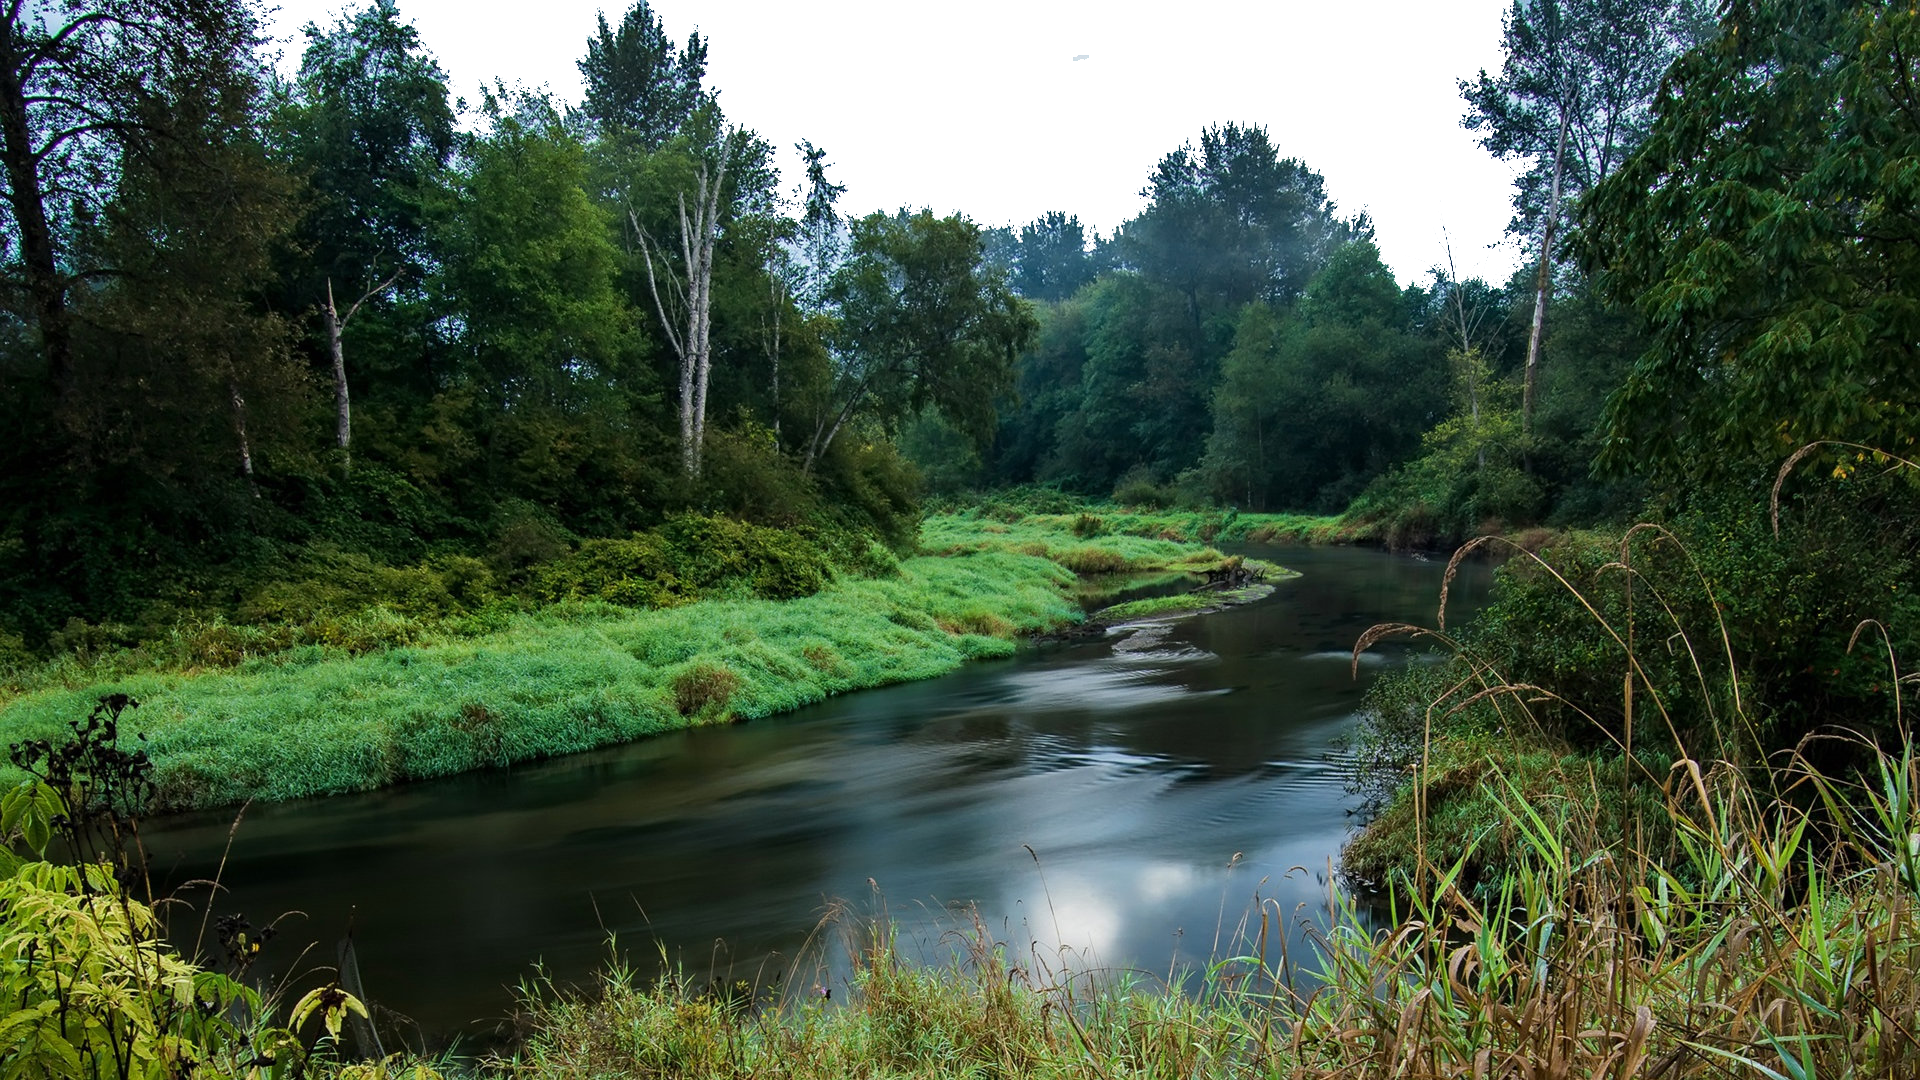 River in the Green Woods PNG Image